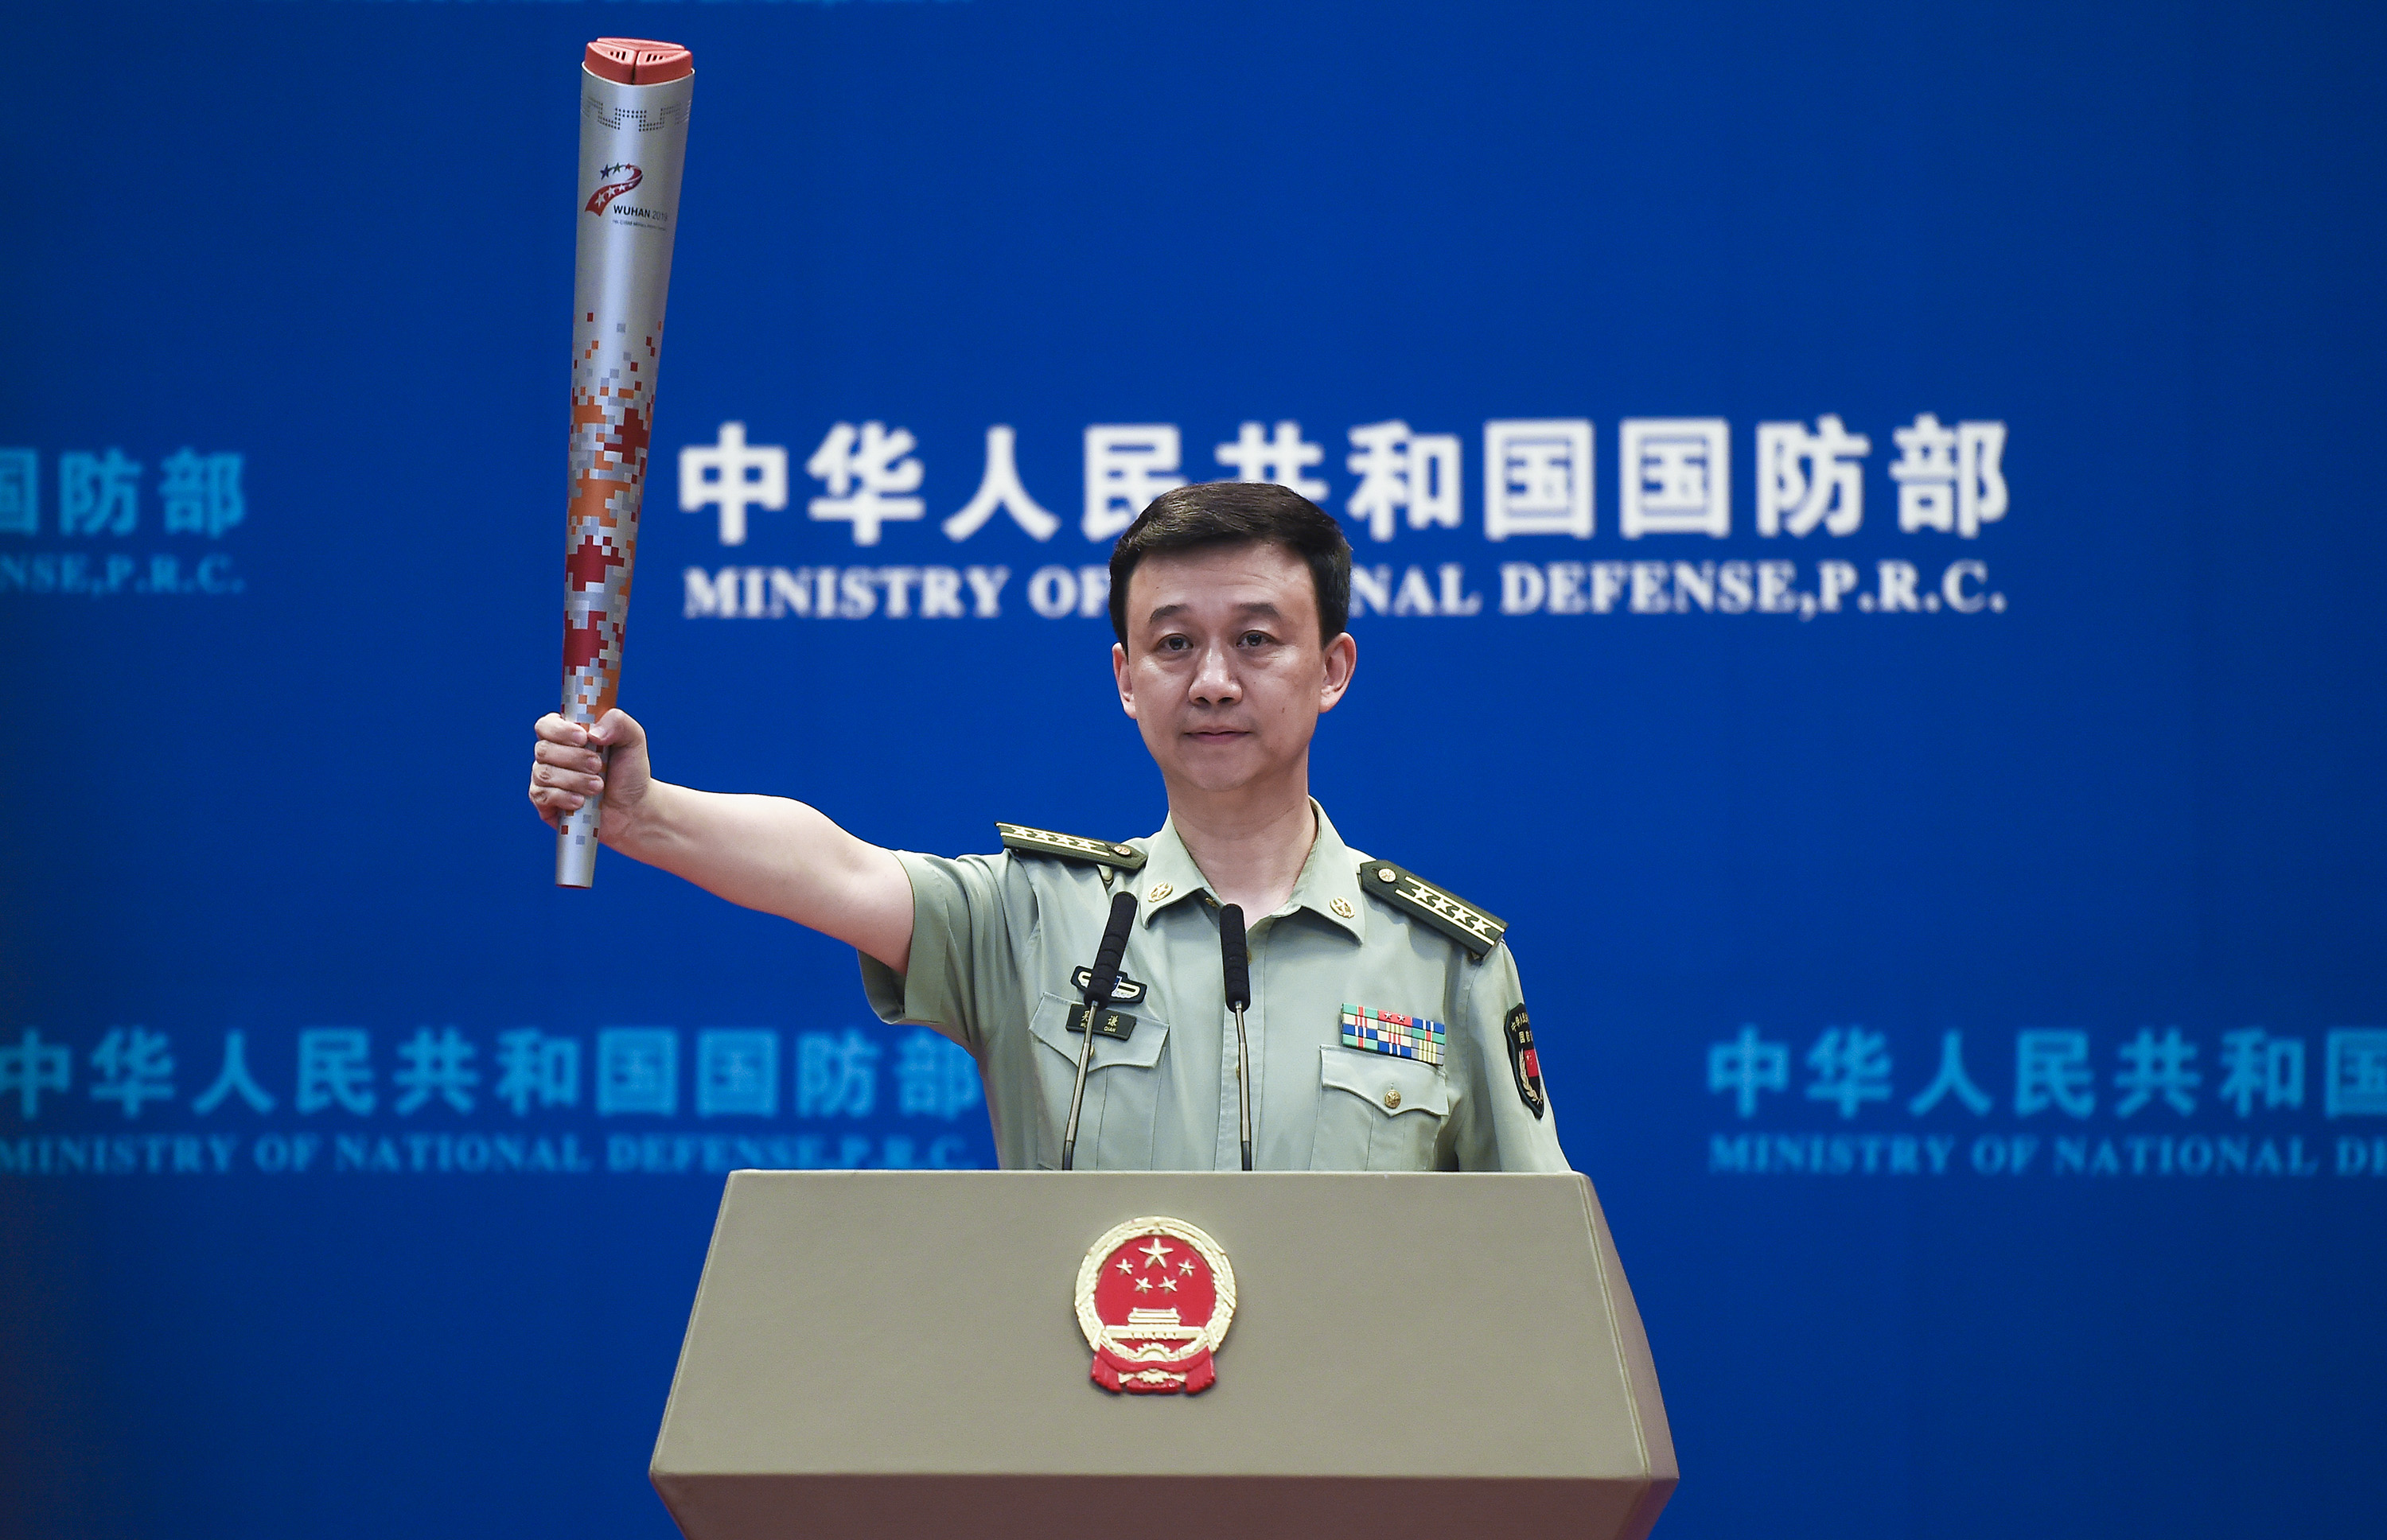 553 Chinese athletes to attend 7th Military World Games